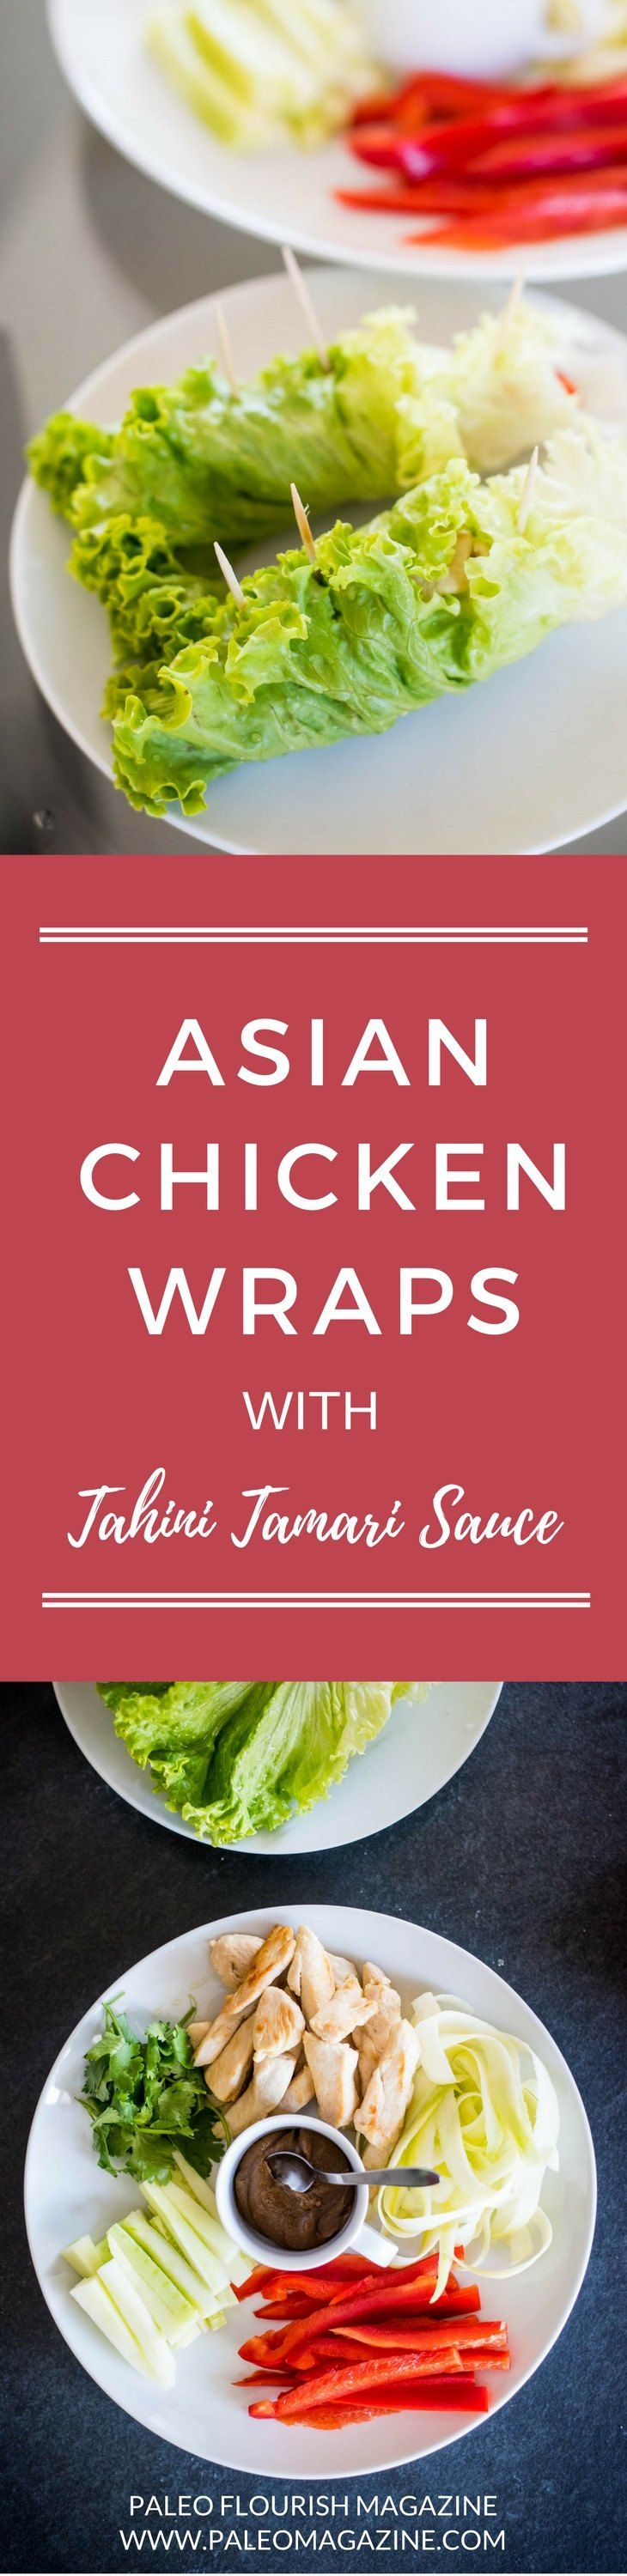 Asian Chicken Wraps with Tahini Tamari Sauce [Paleo, Keto] #paleo #recipes #glutenfree http://paleomagazine.com/asian-chicken-wraps-recipe